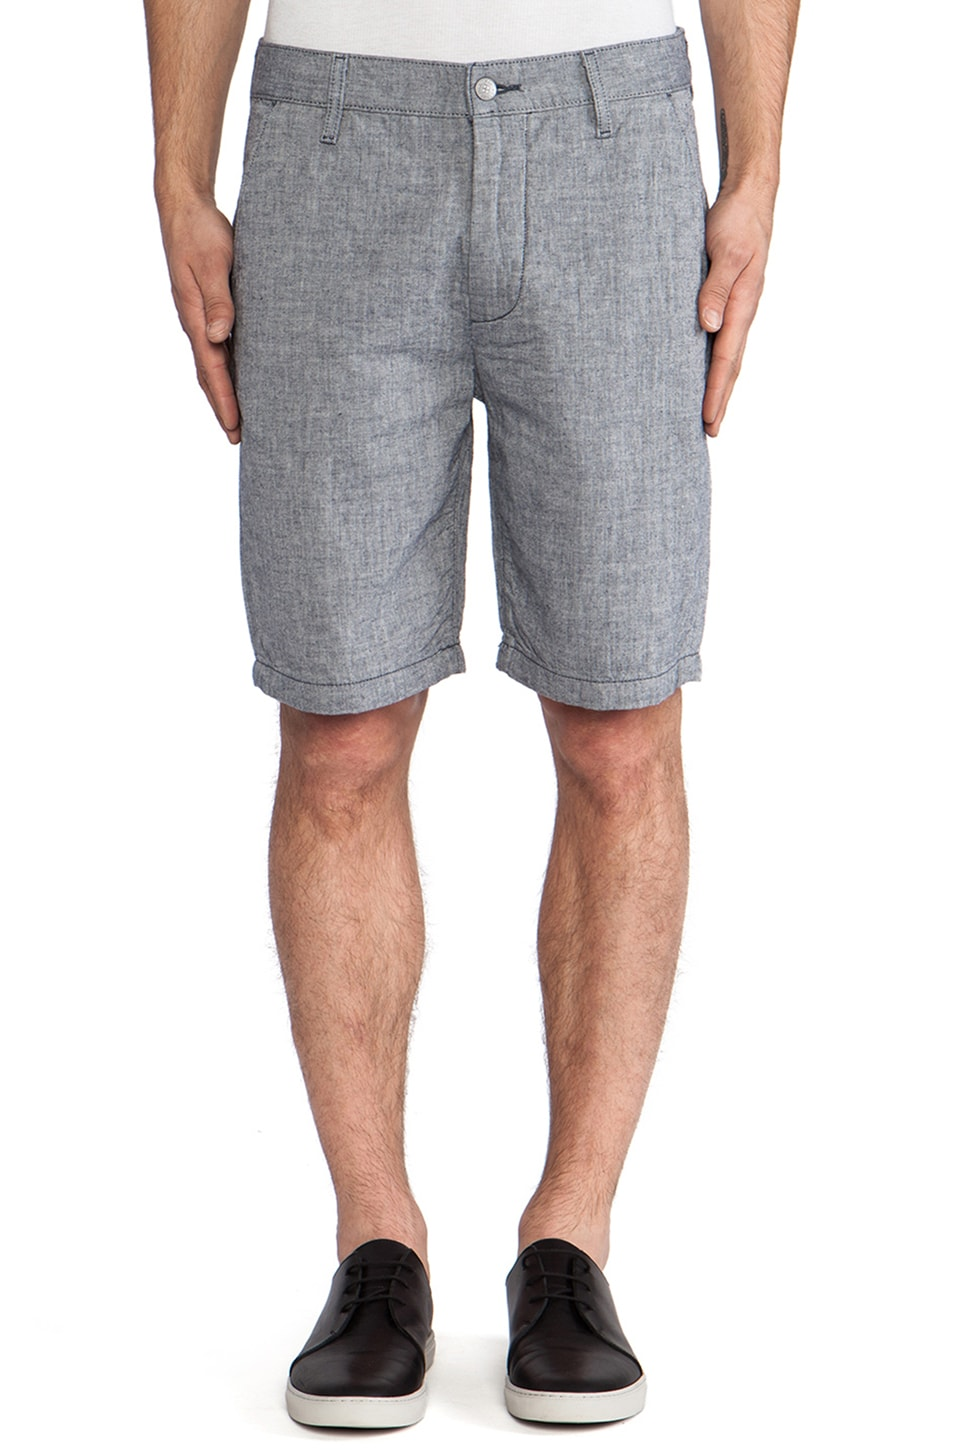 7 For All Mankind Chino Short in Indigo Stripe